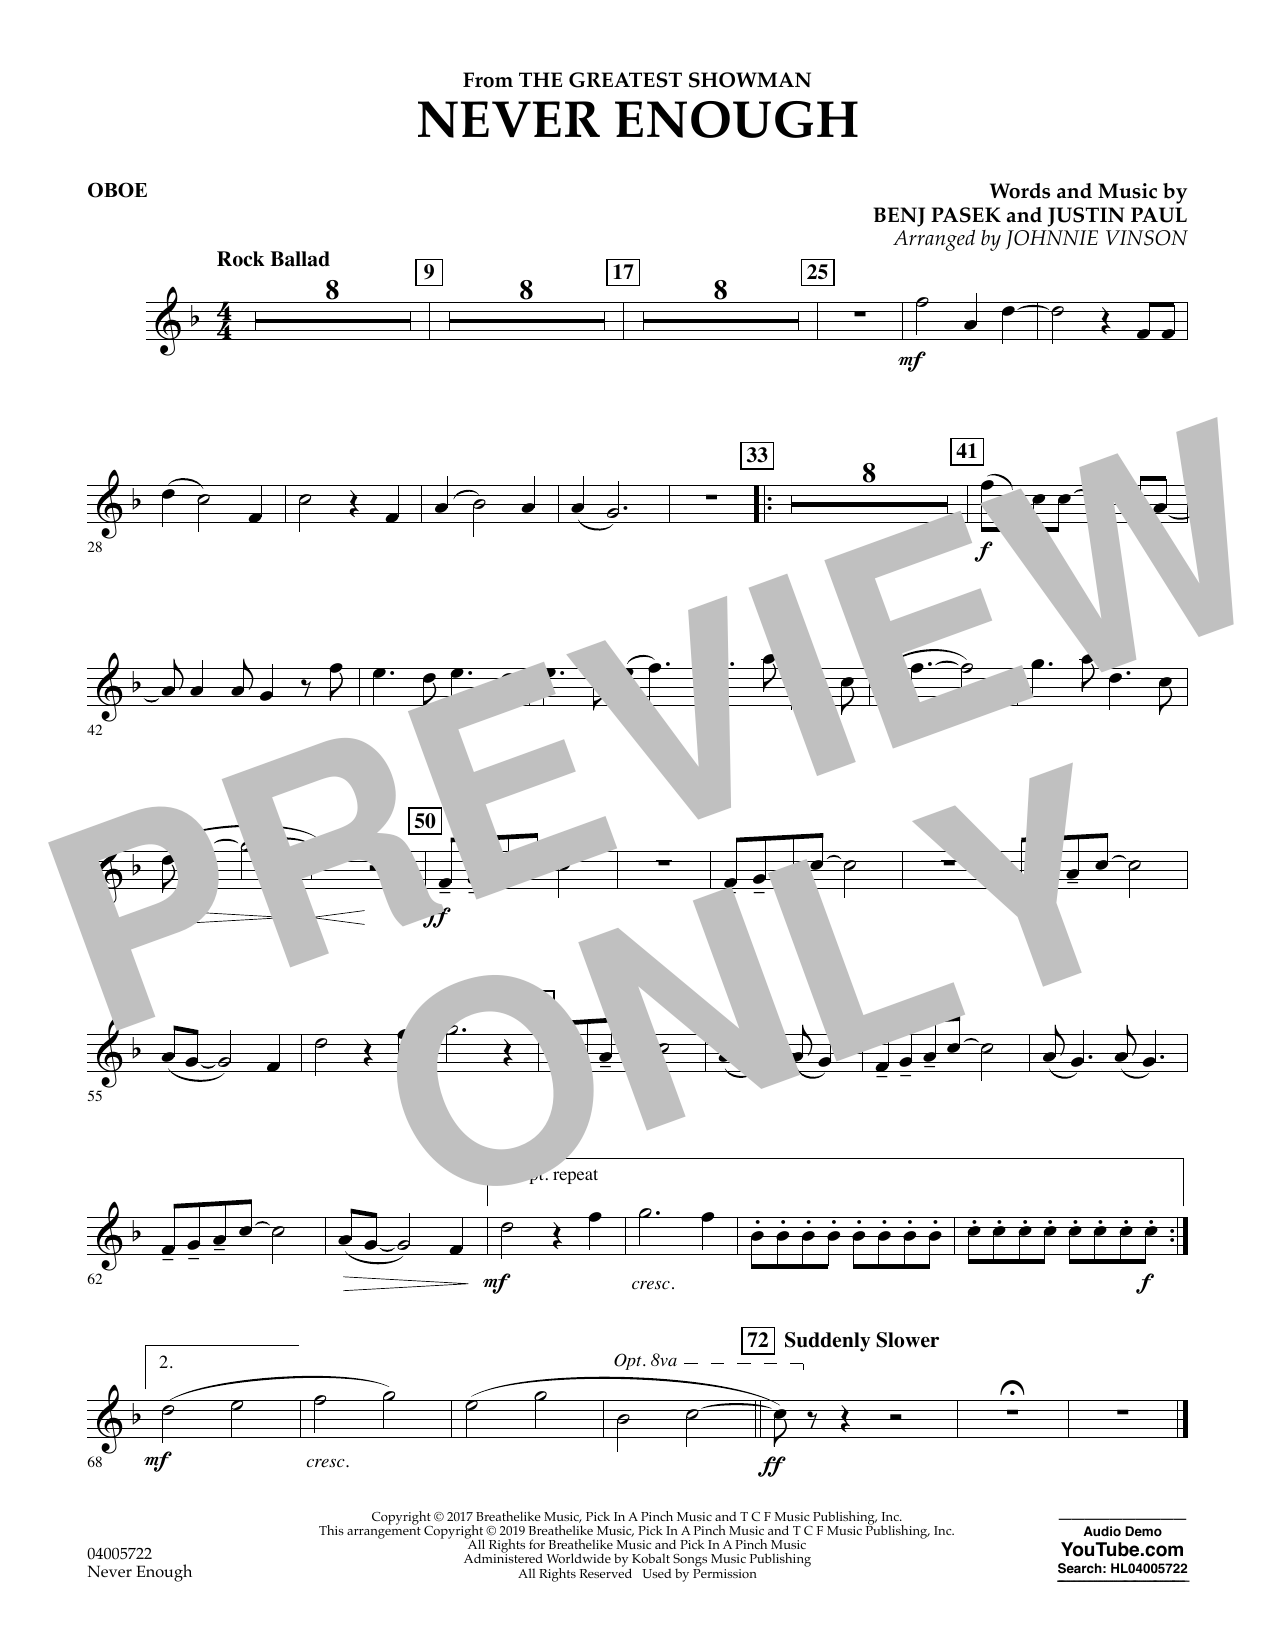 Never Enough (from The Greatest Showman) (arr. Johnnie Vinson) - Oboe (Concert Band)